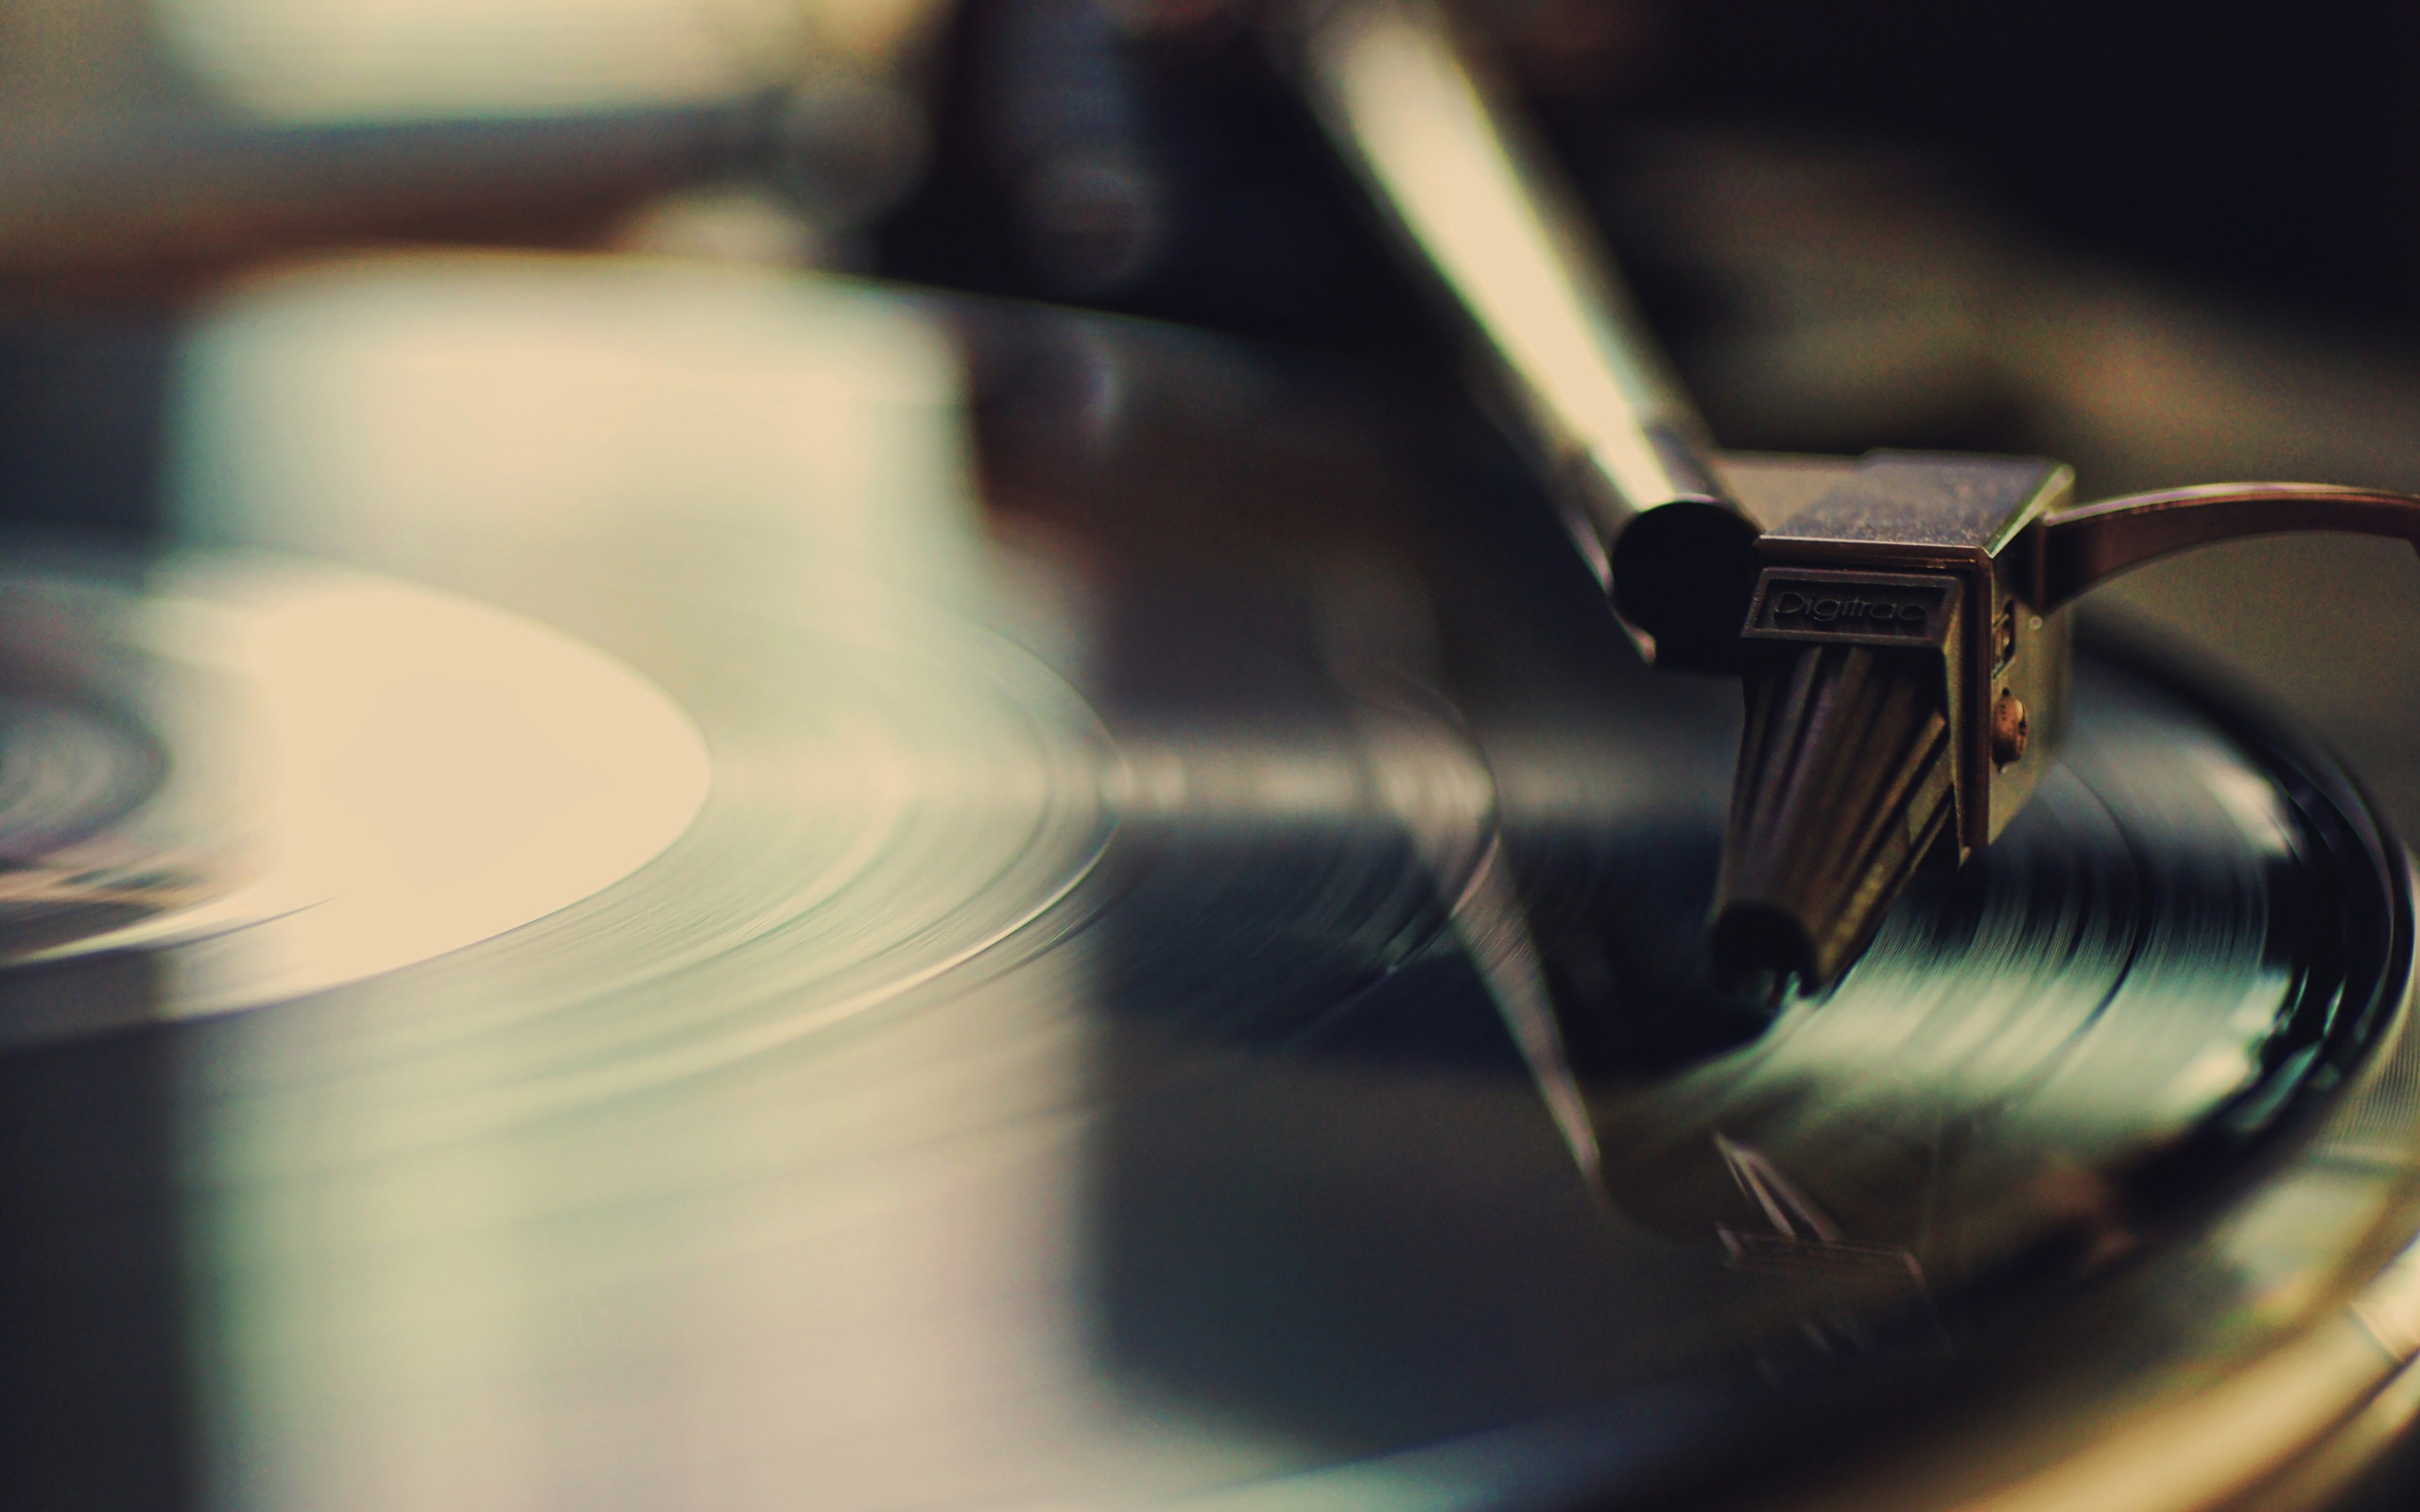 Record player wallpaper hd wallpapersafari - Washable wallpaper ...